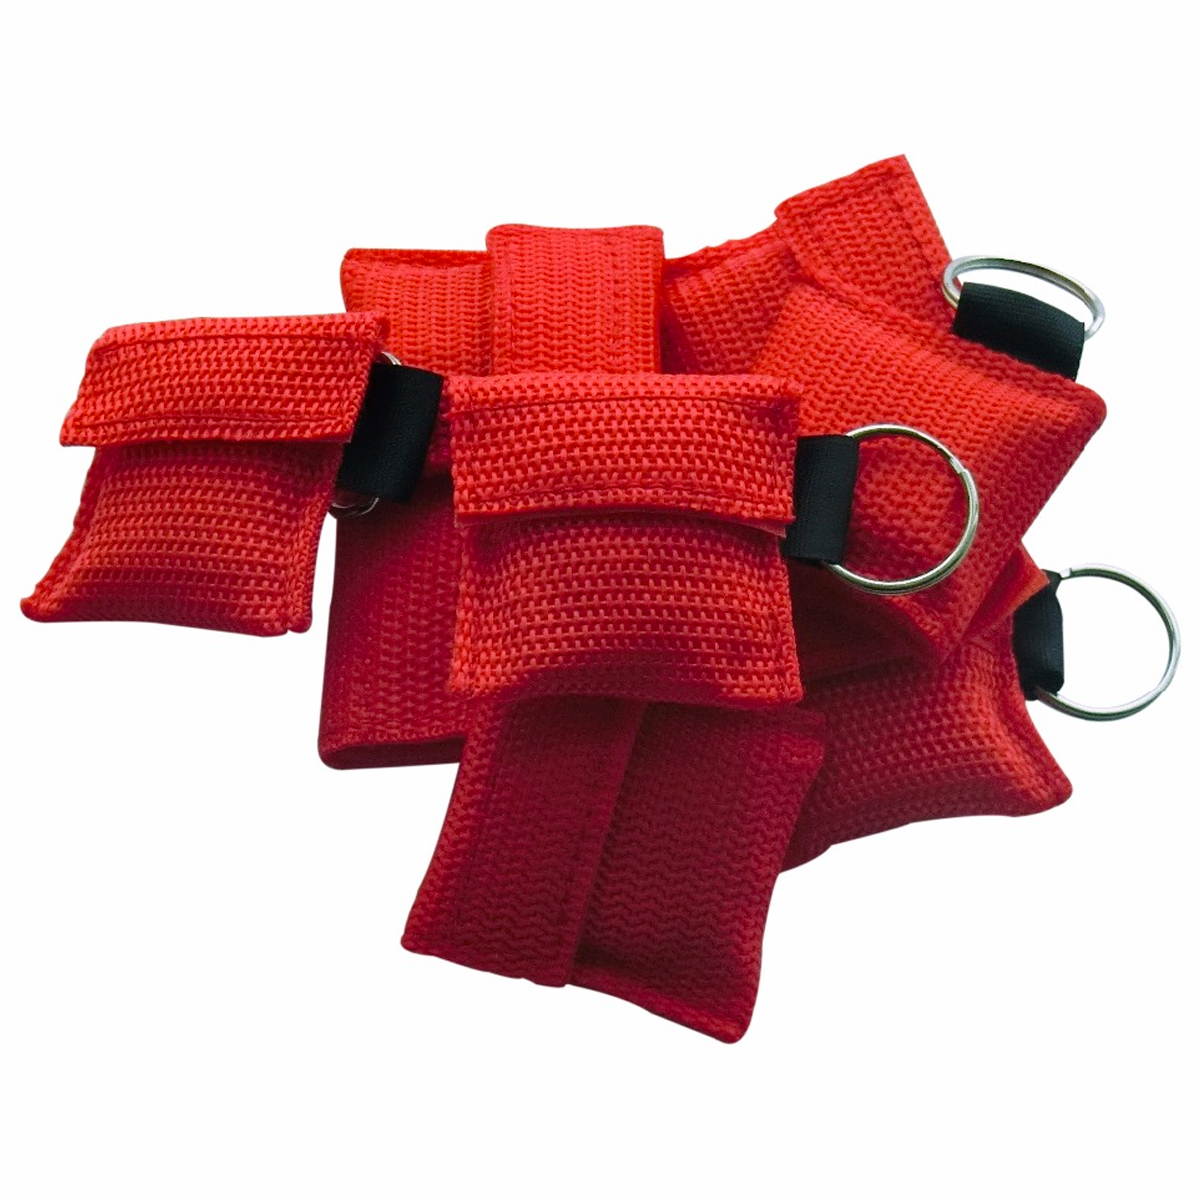 80Pcs Pack Red Cross CPR Resuscitator Mask First Aid Rescue Kit CPR Face Shield With Keychain